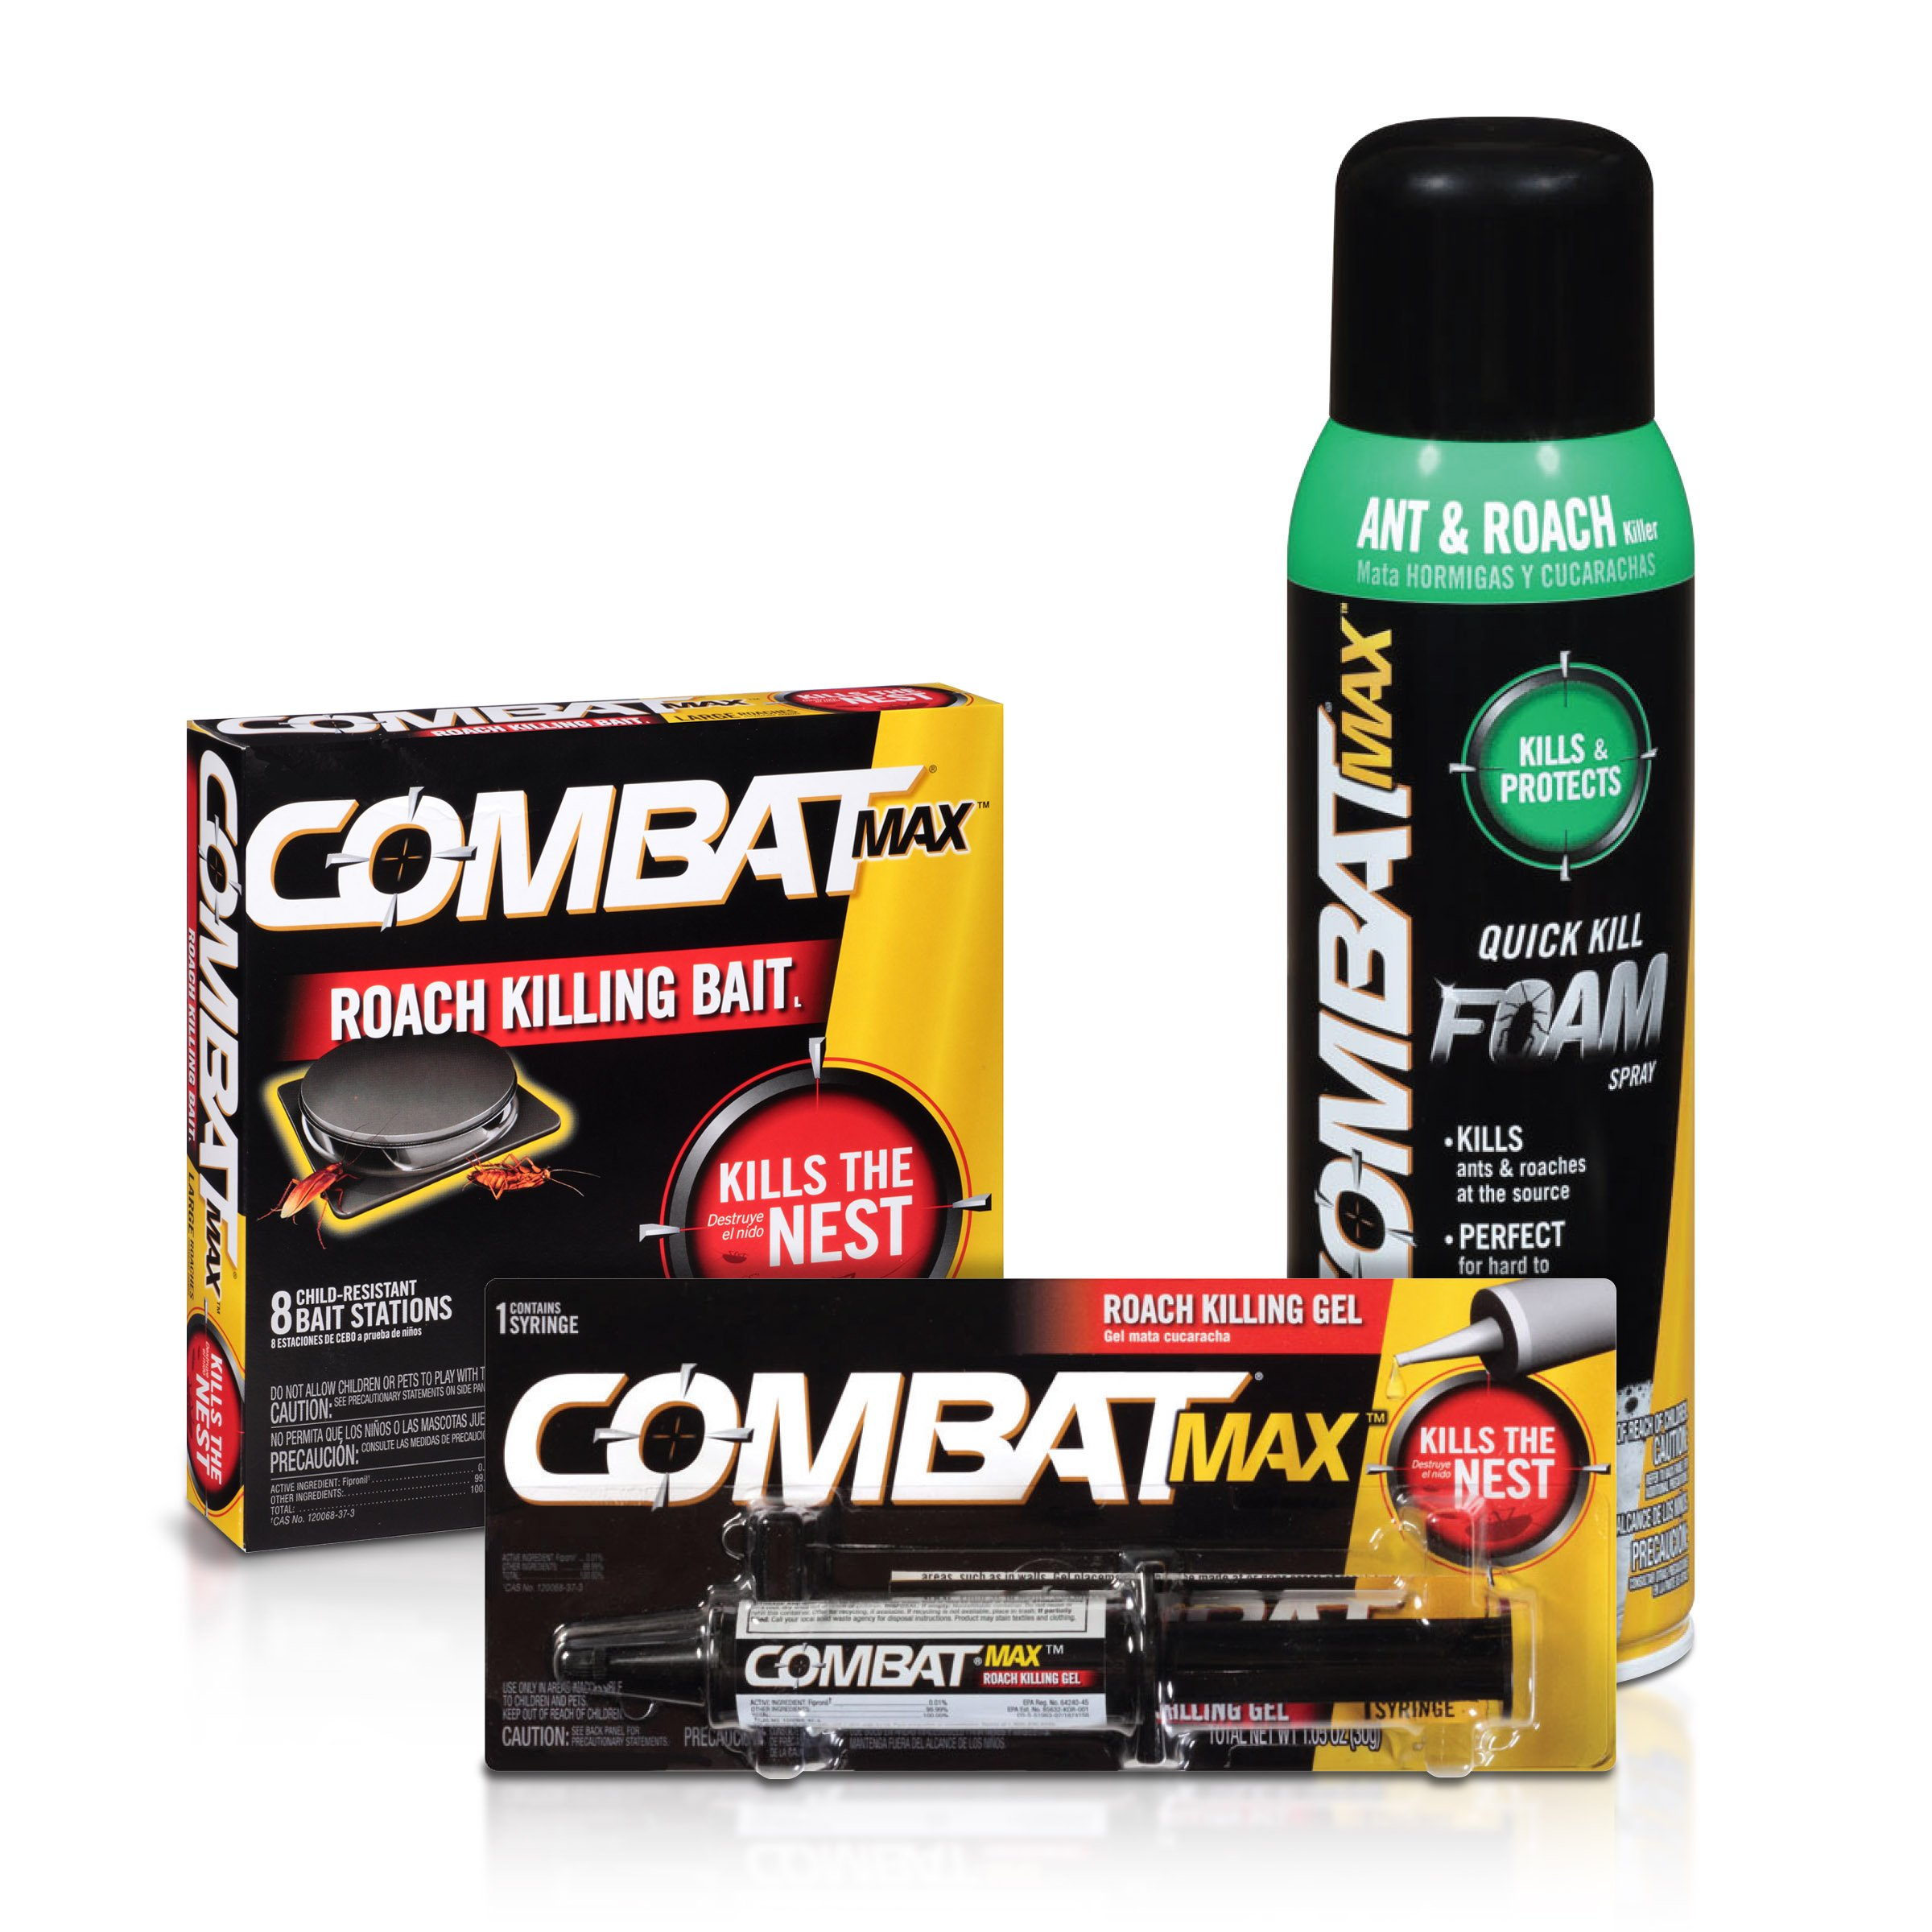 Combat Max Large Roach Control Products - Bait, Gel, and Foam Spray